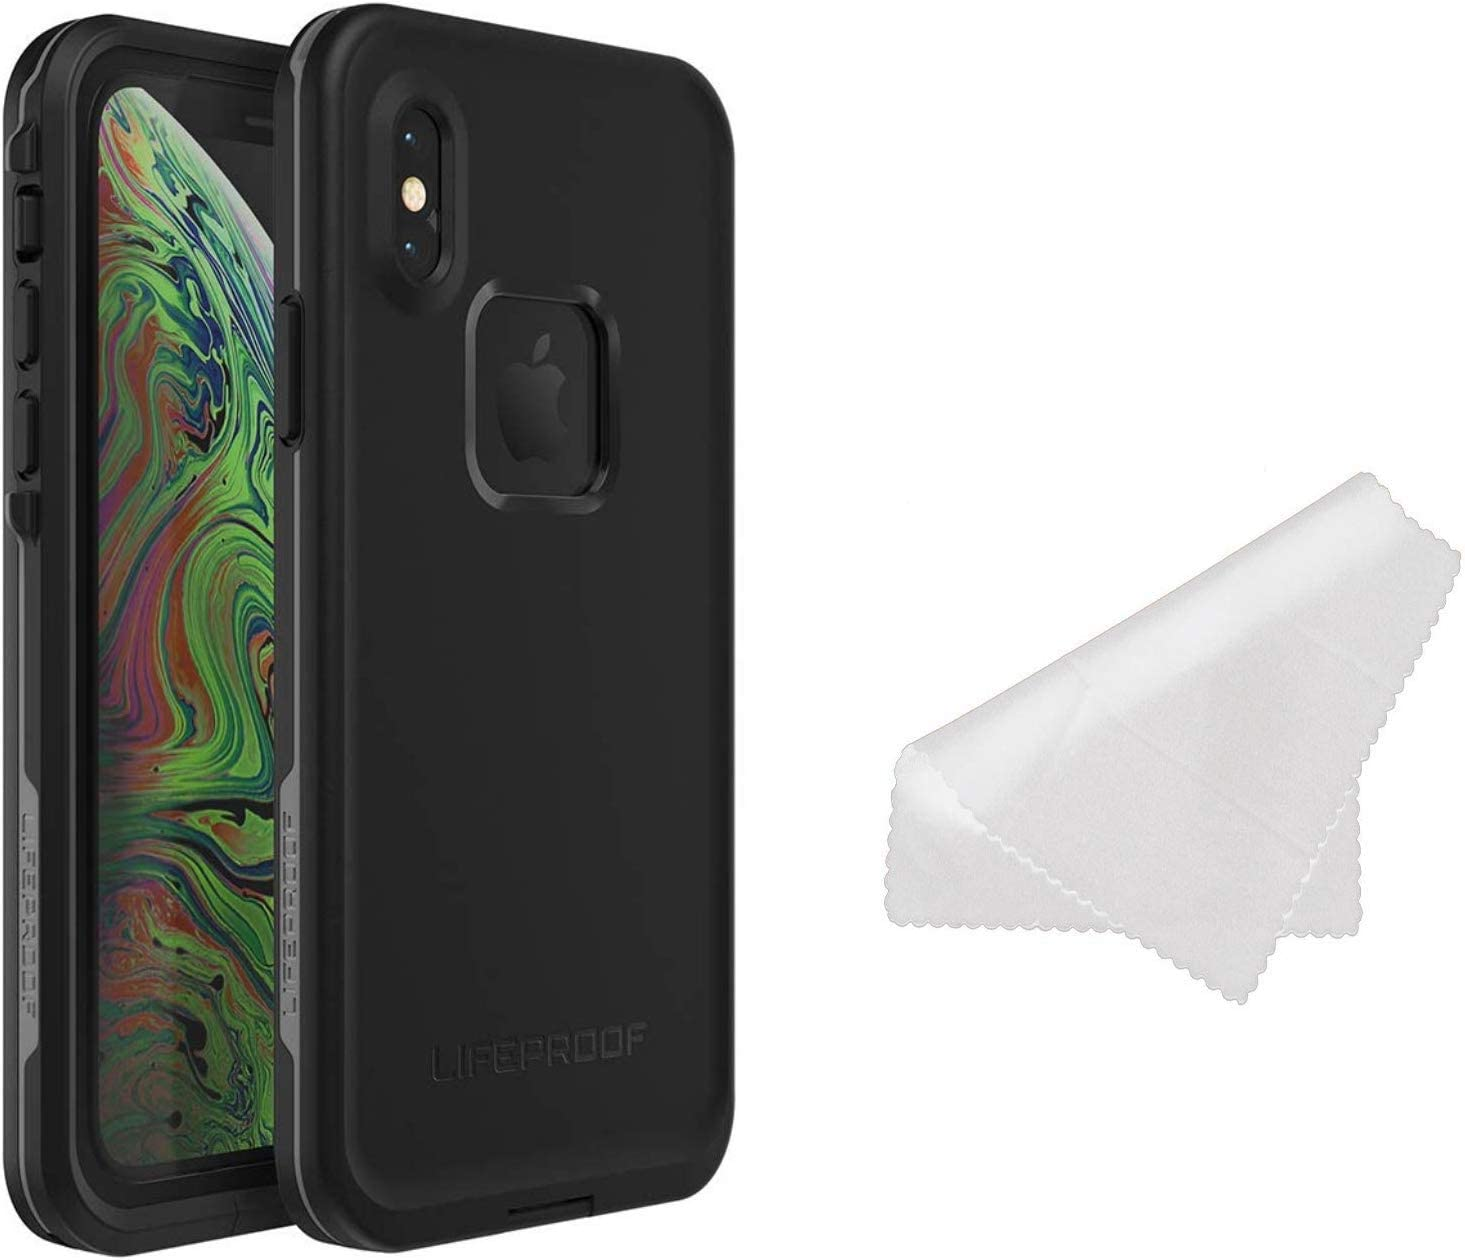 Lifeproof FRE Series Waterproof Case for iPhone Xs (ONLY) with Cleaning Cloth - Retail Packaging - Asphalt (Black/Dark Grey)